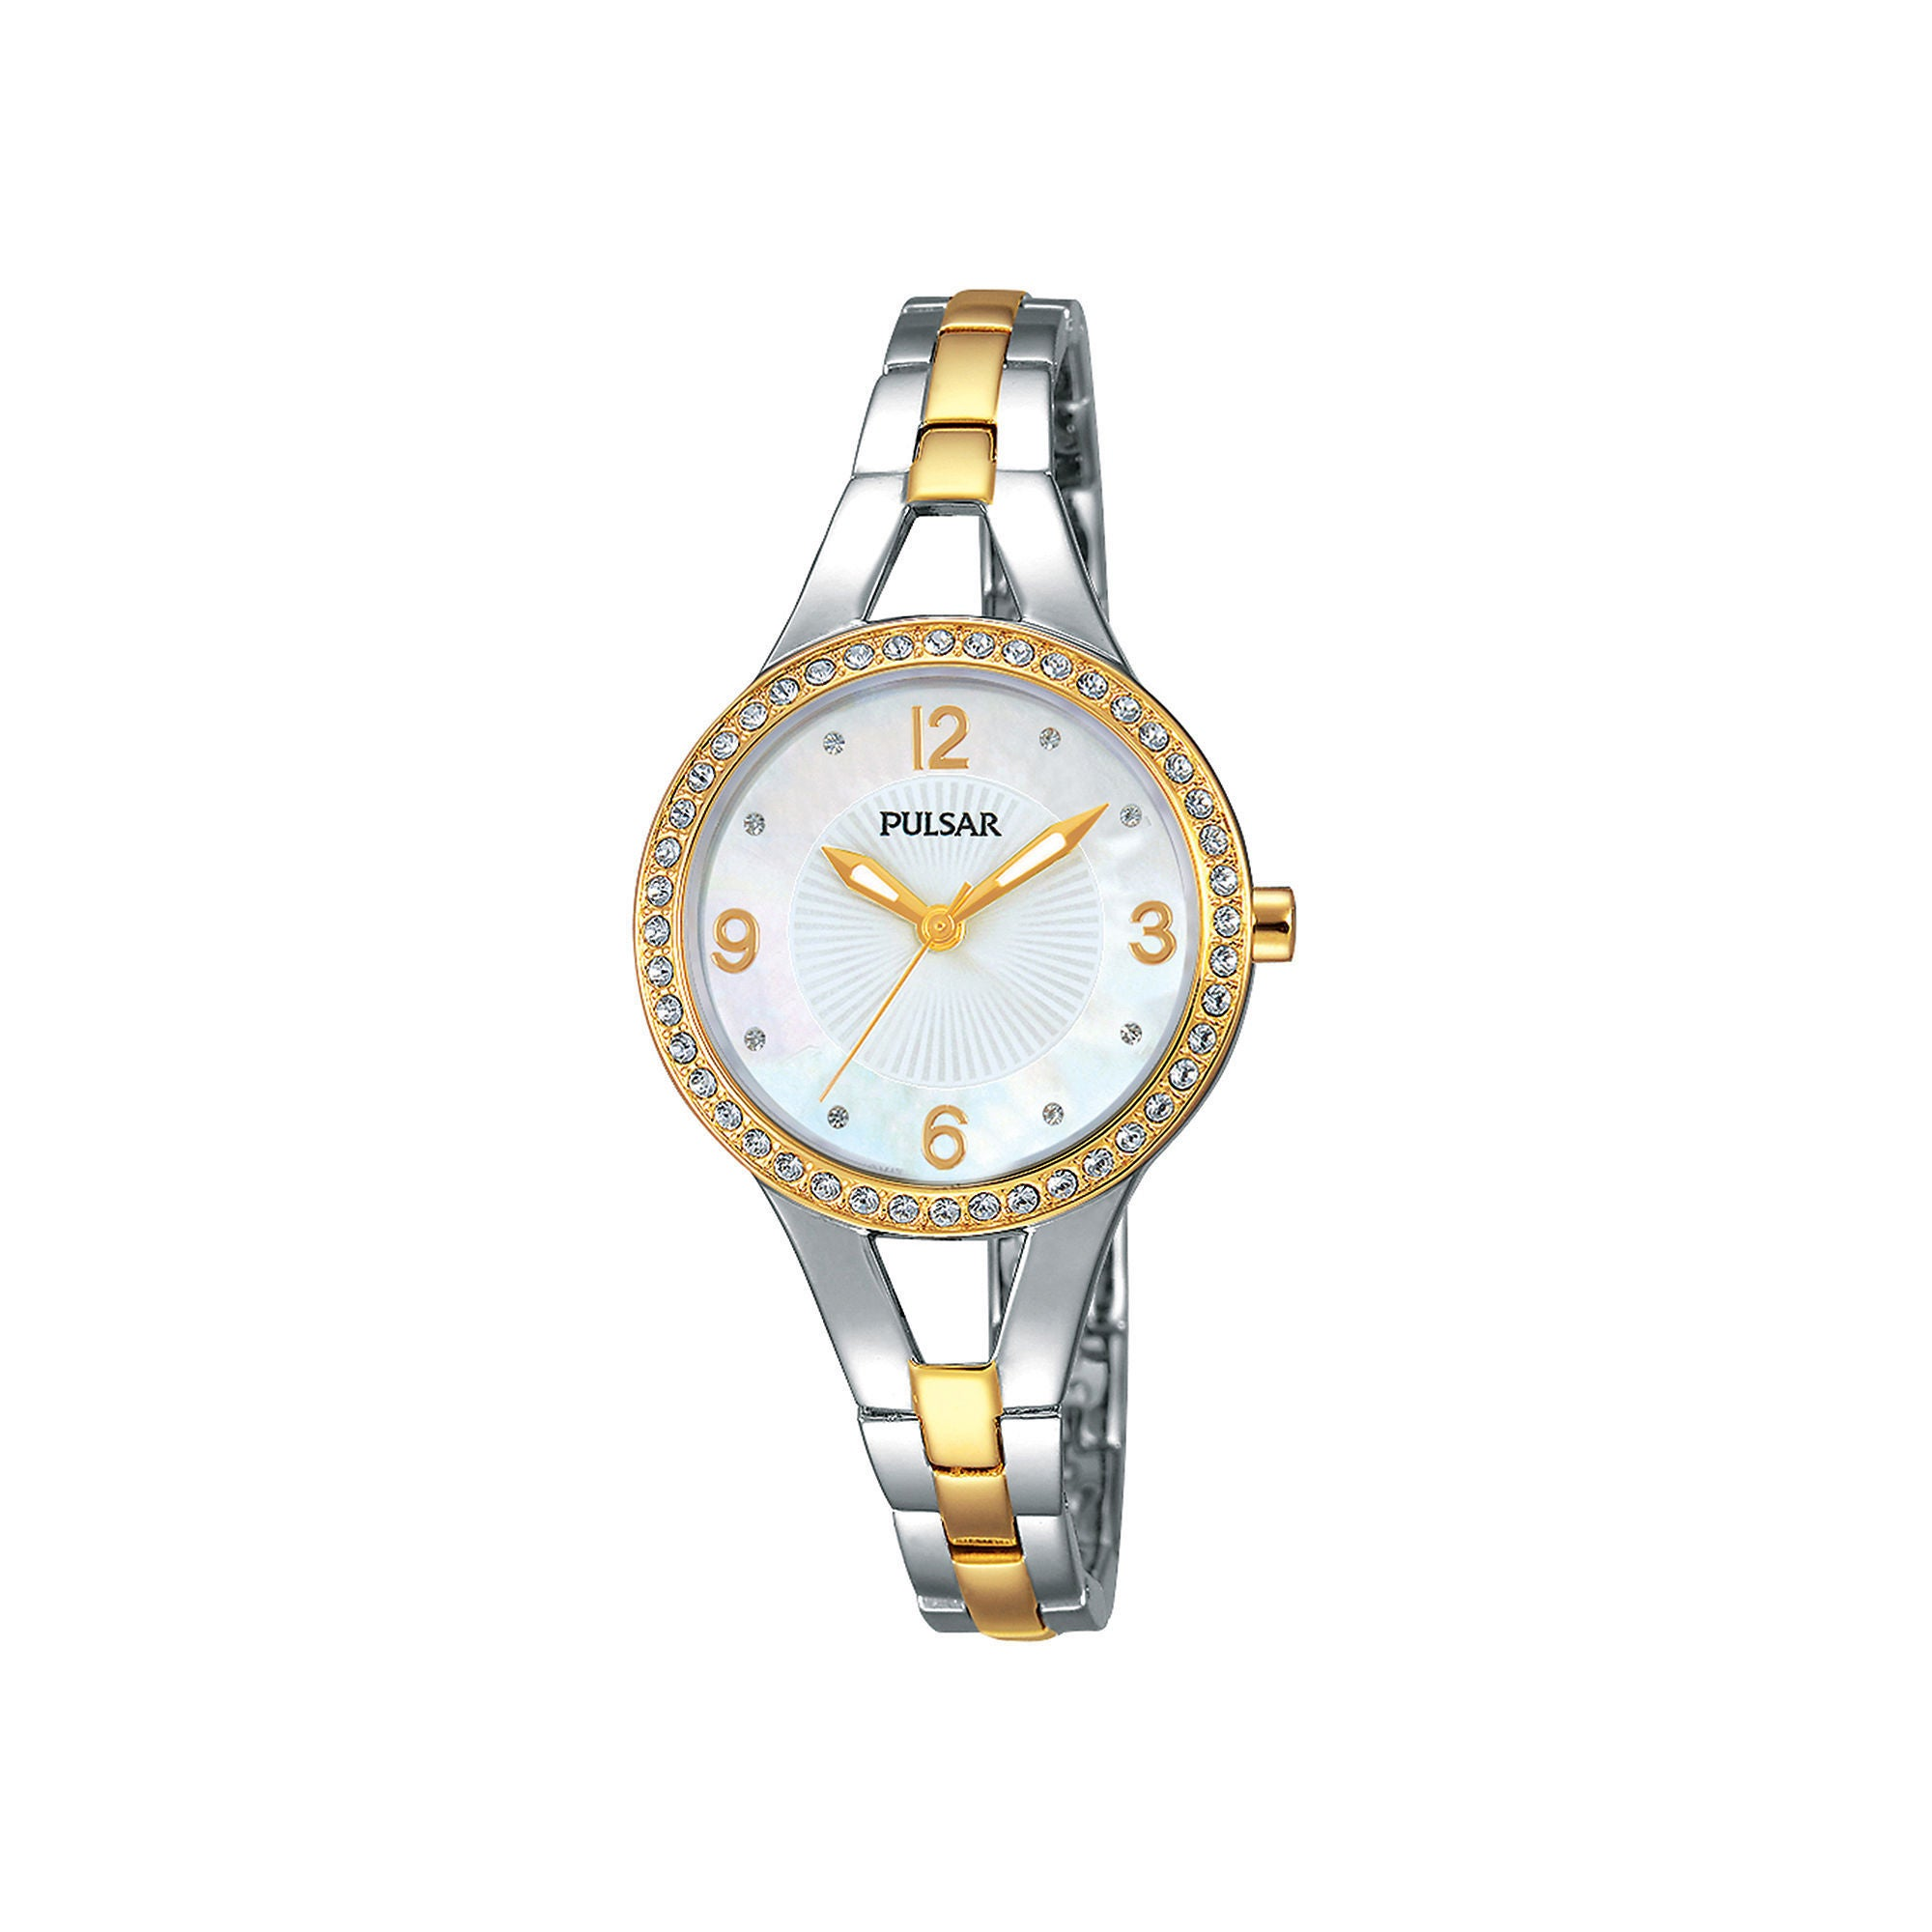 PULSAR Women's PH8120 Two-tone Bracelet Mother-of-pearl D...